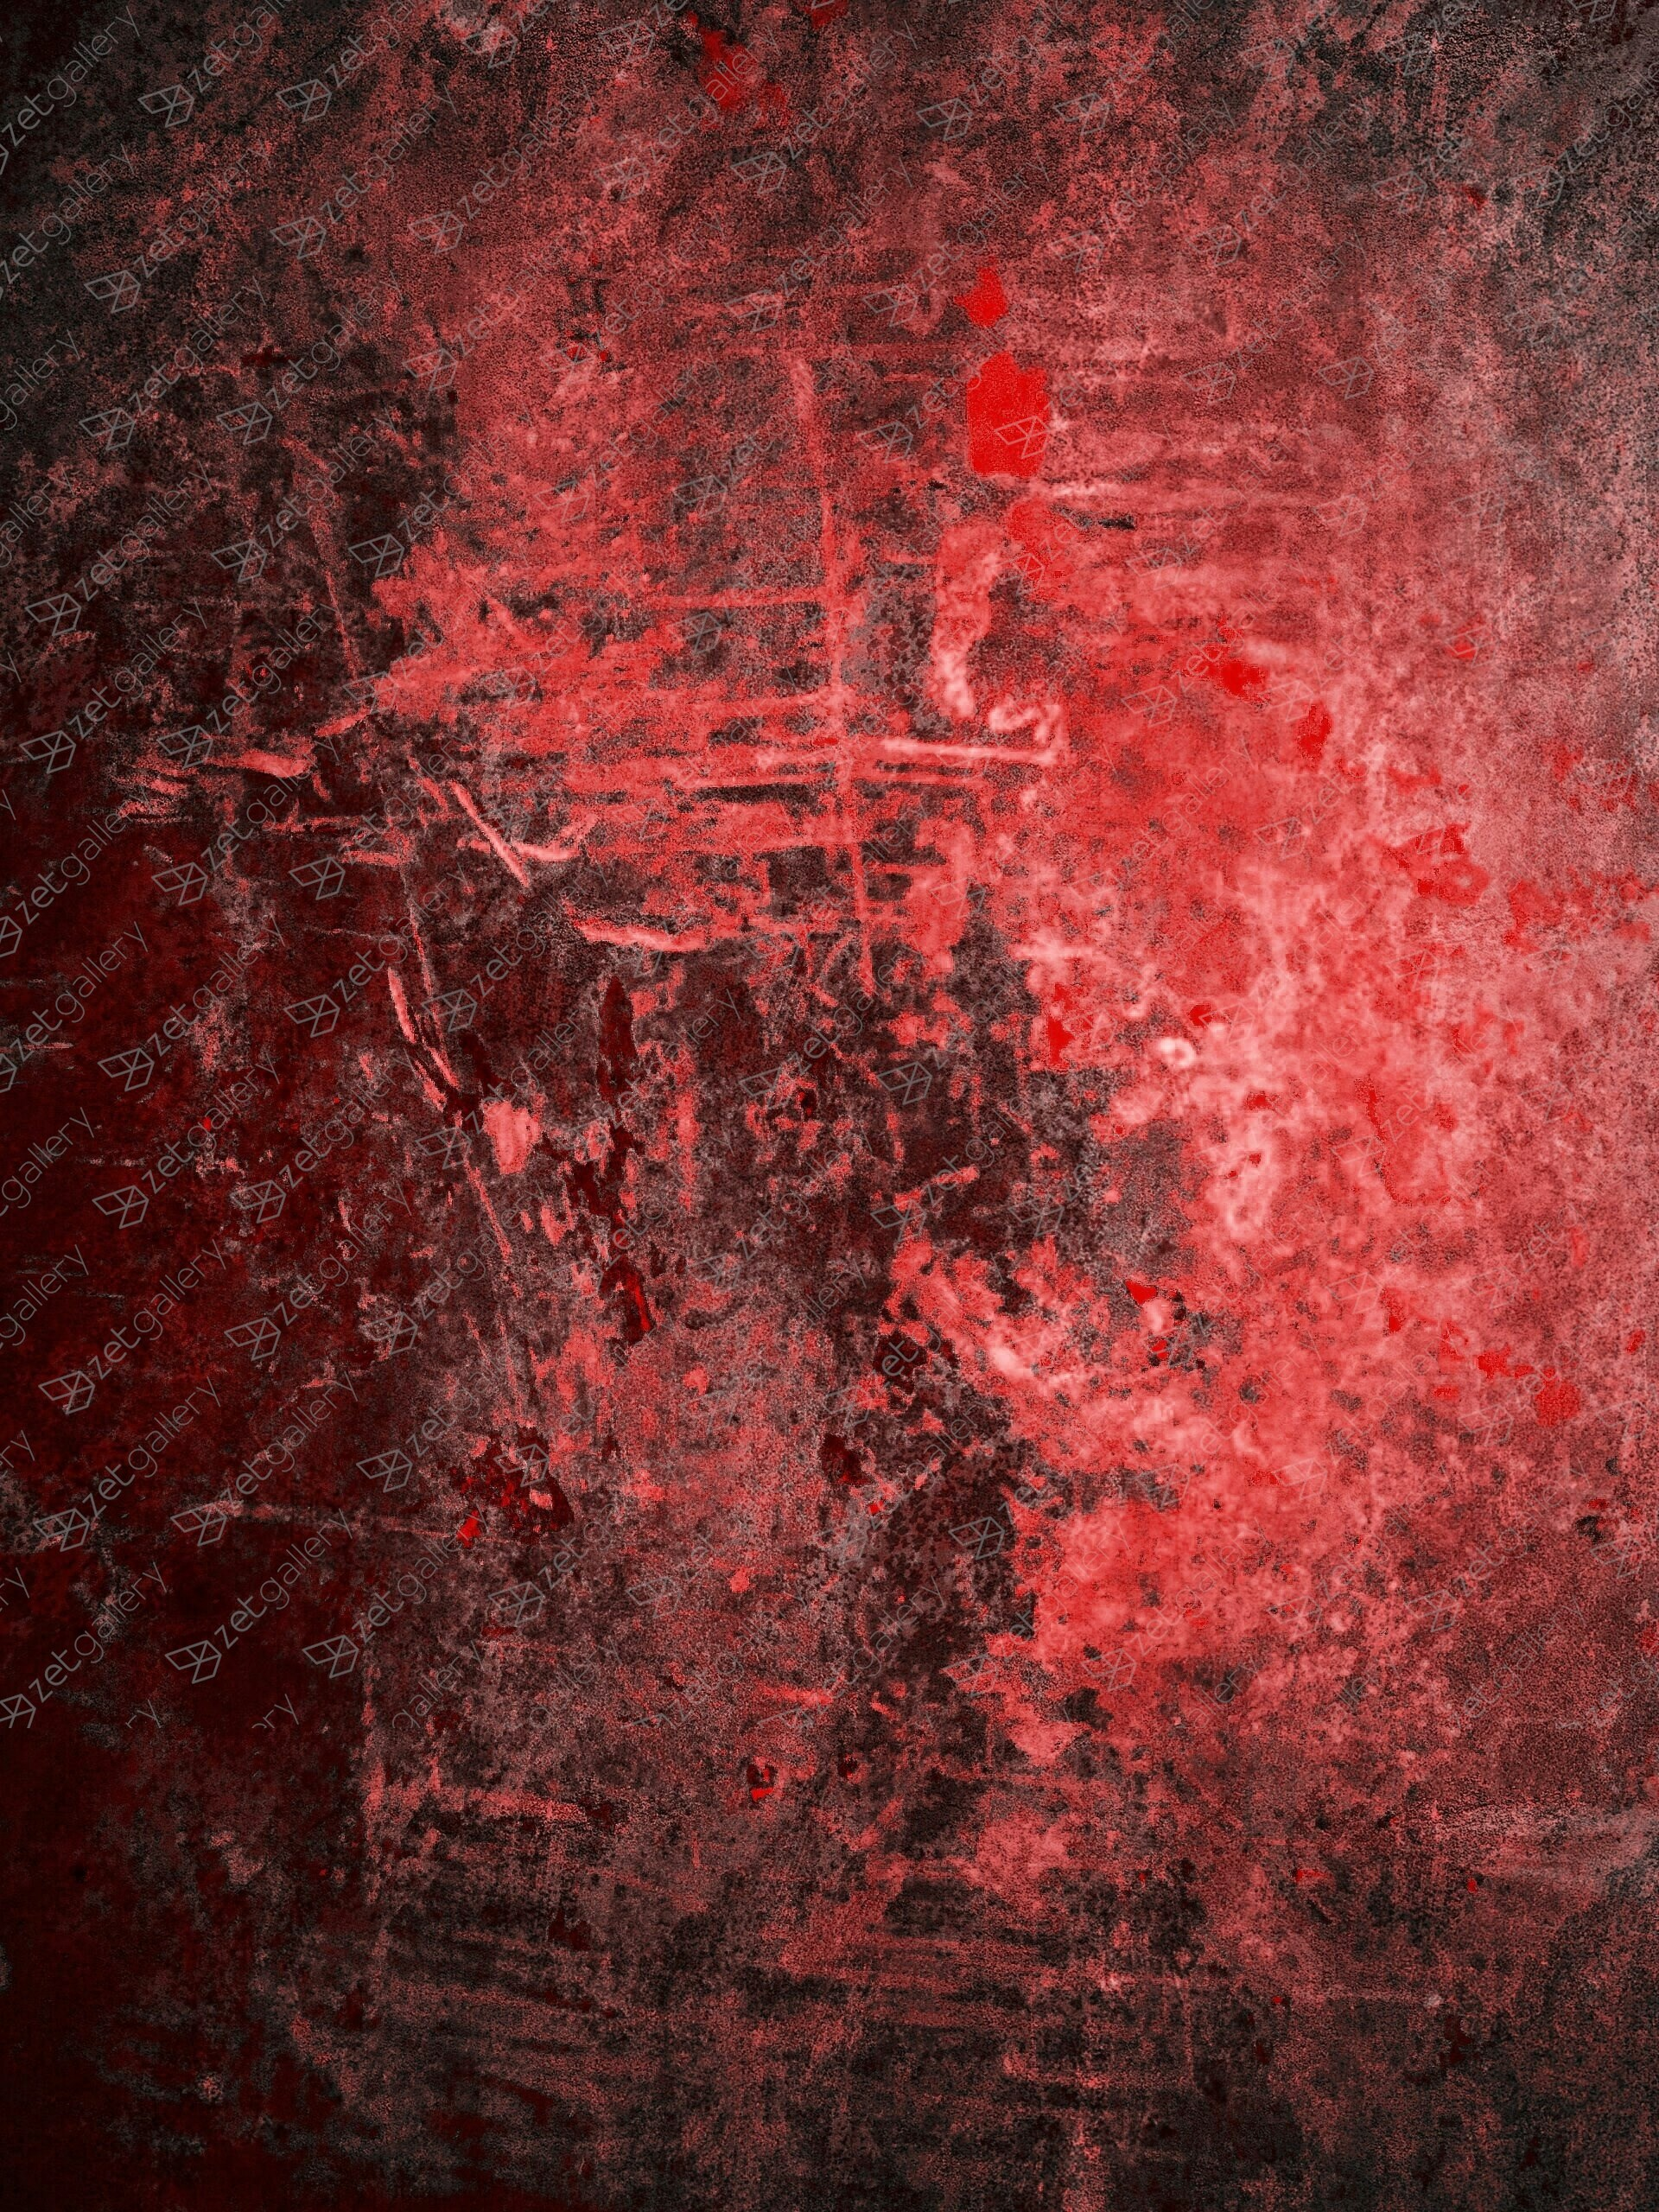 red no.9, original Abstract Digital Photography by Magdalena Kaczmarczyk